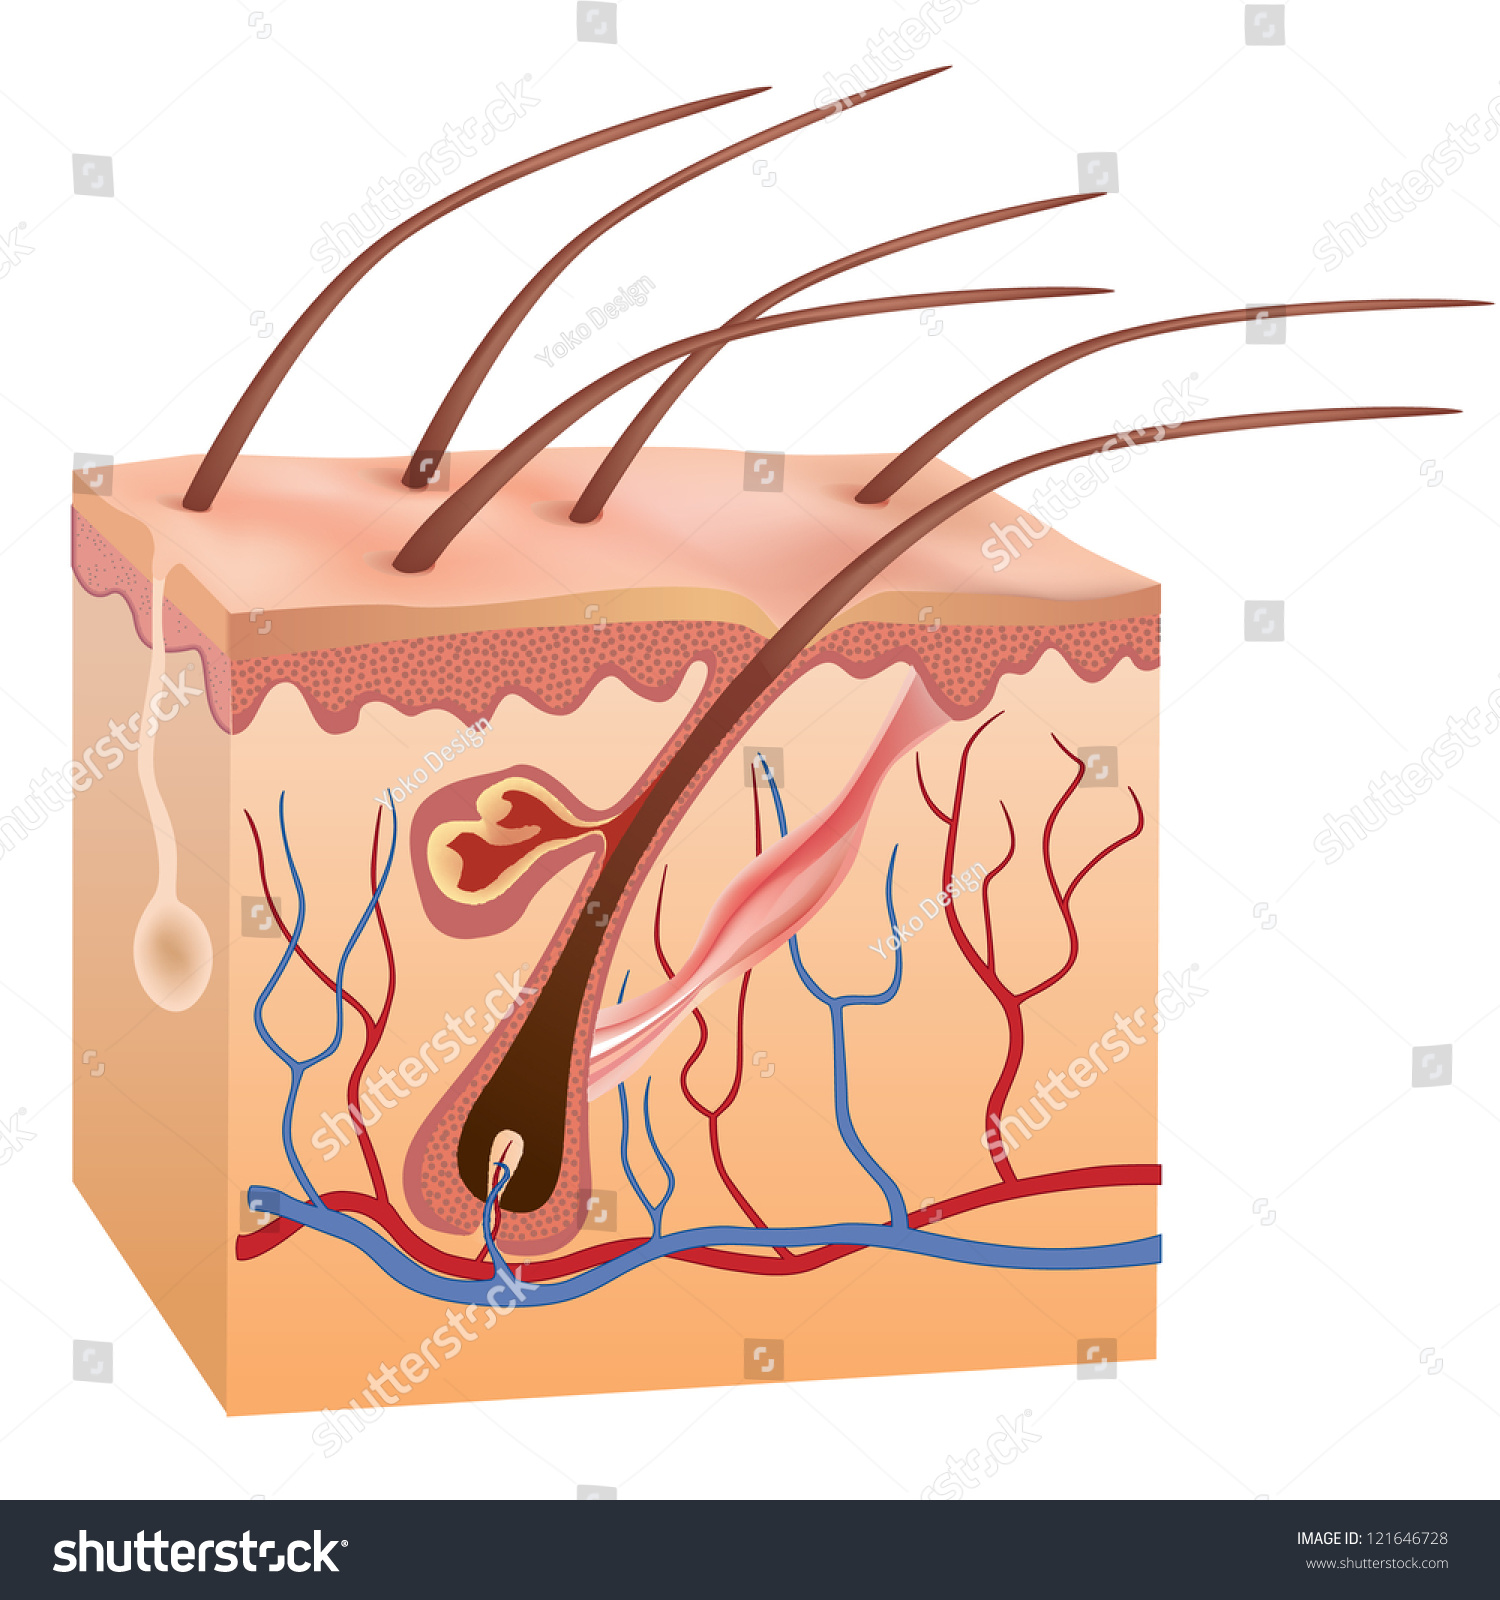 human skin hair structure anatomical sign stock vector 121646728 human skin hair structure anatomical sign stock vector 121646728